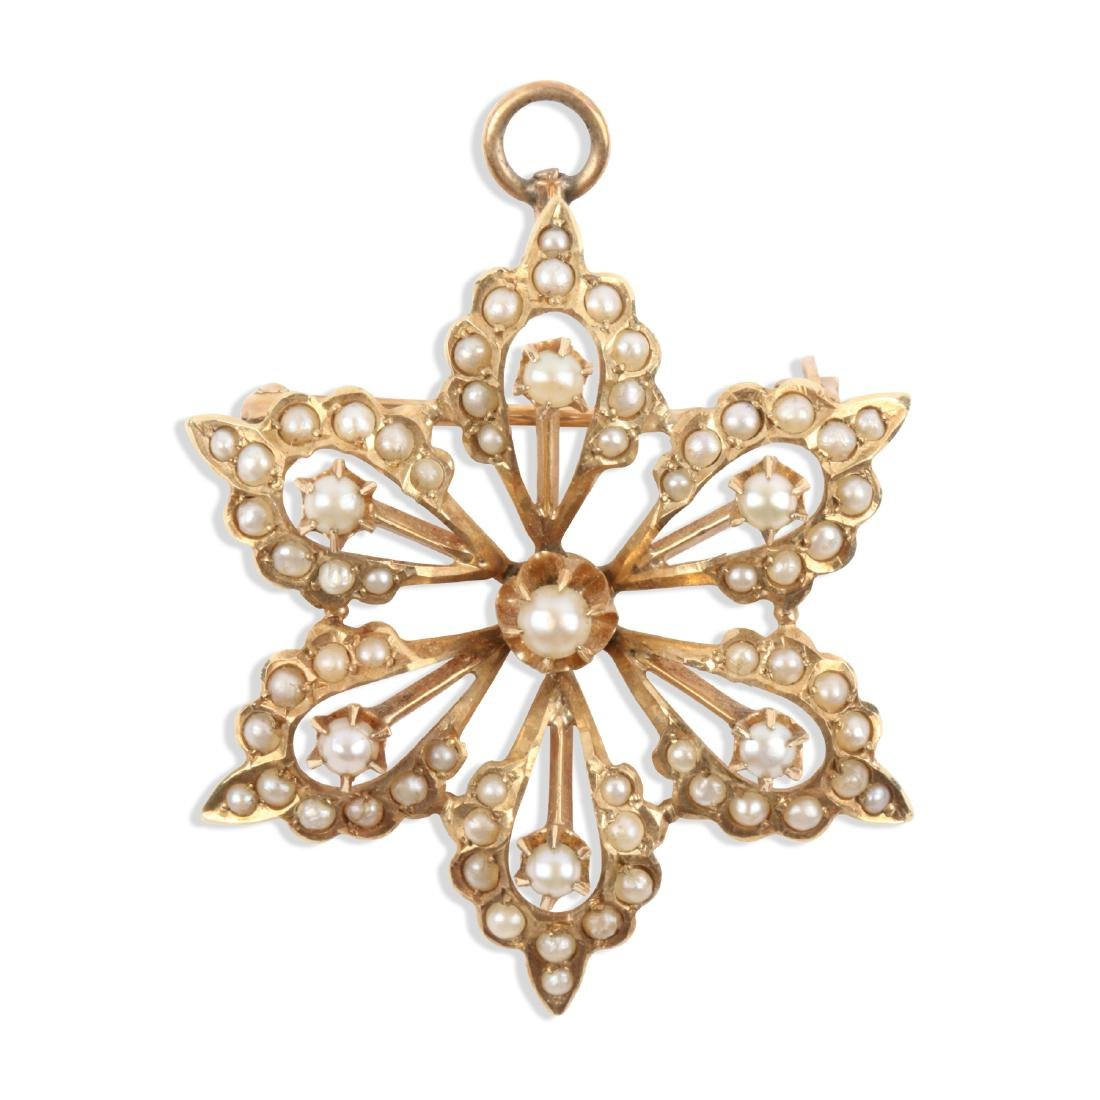 An Edwardian 14K Gold & Seed Pearl Brooch